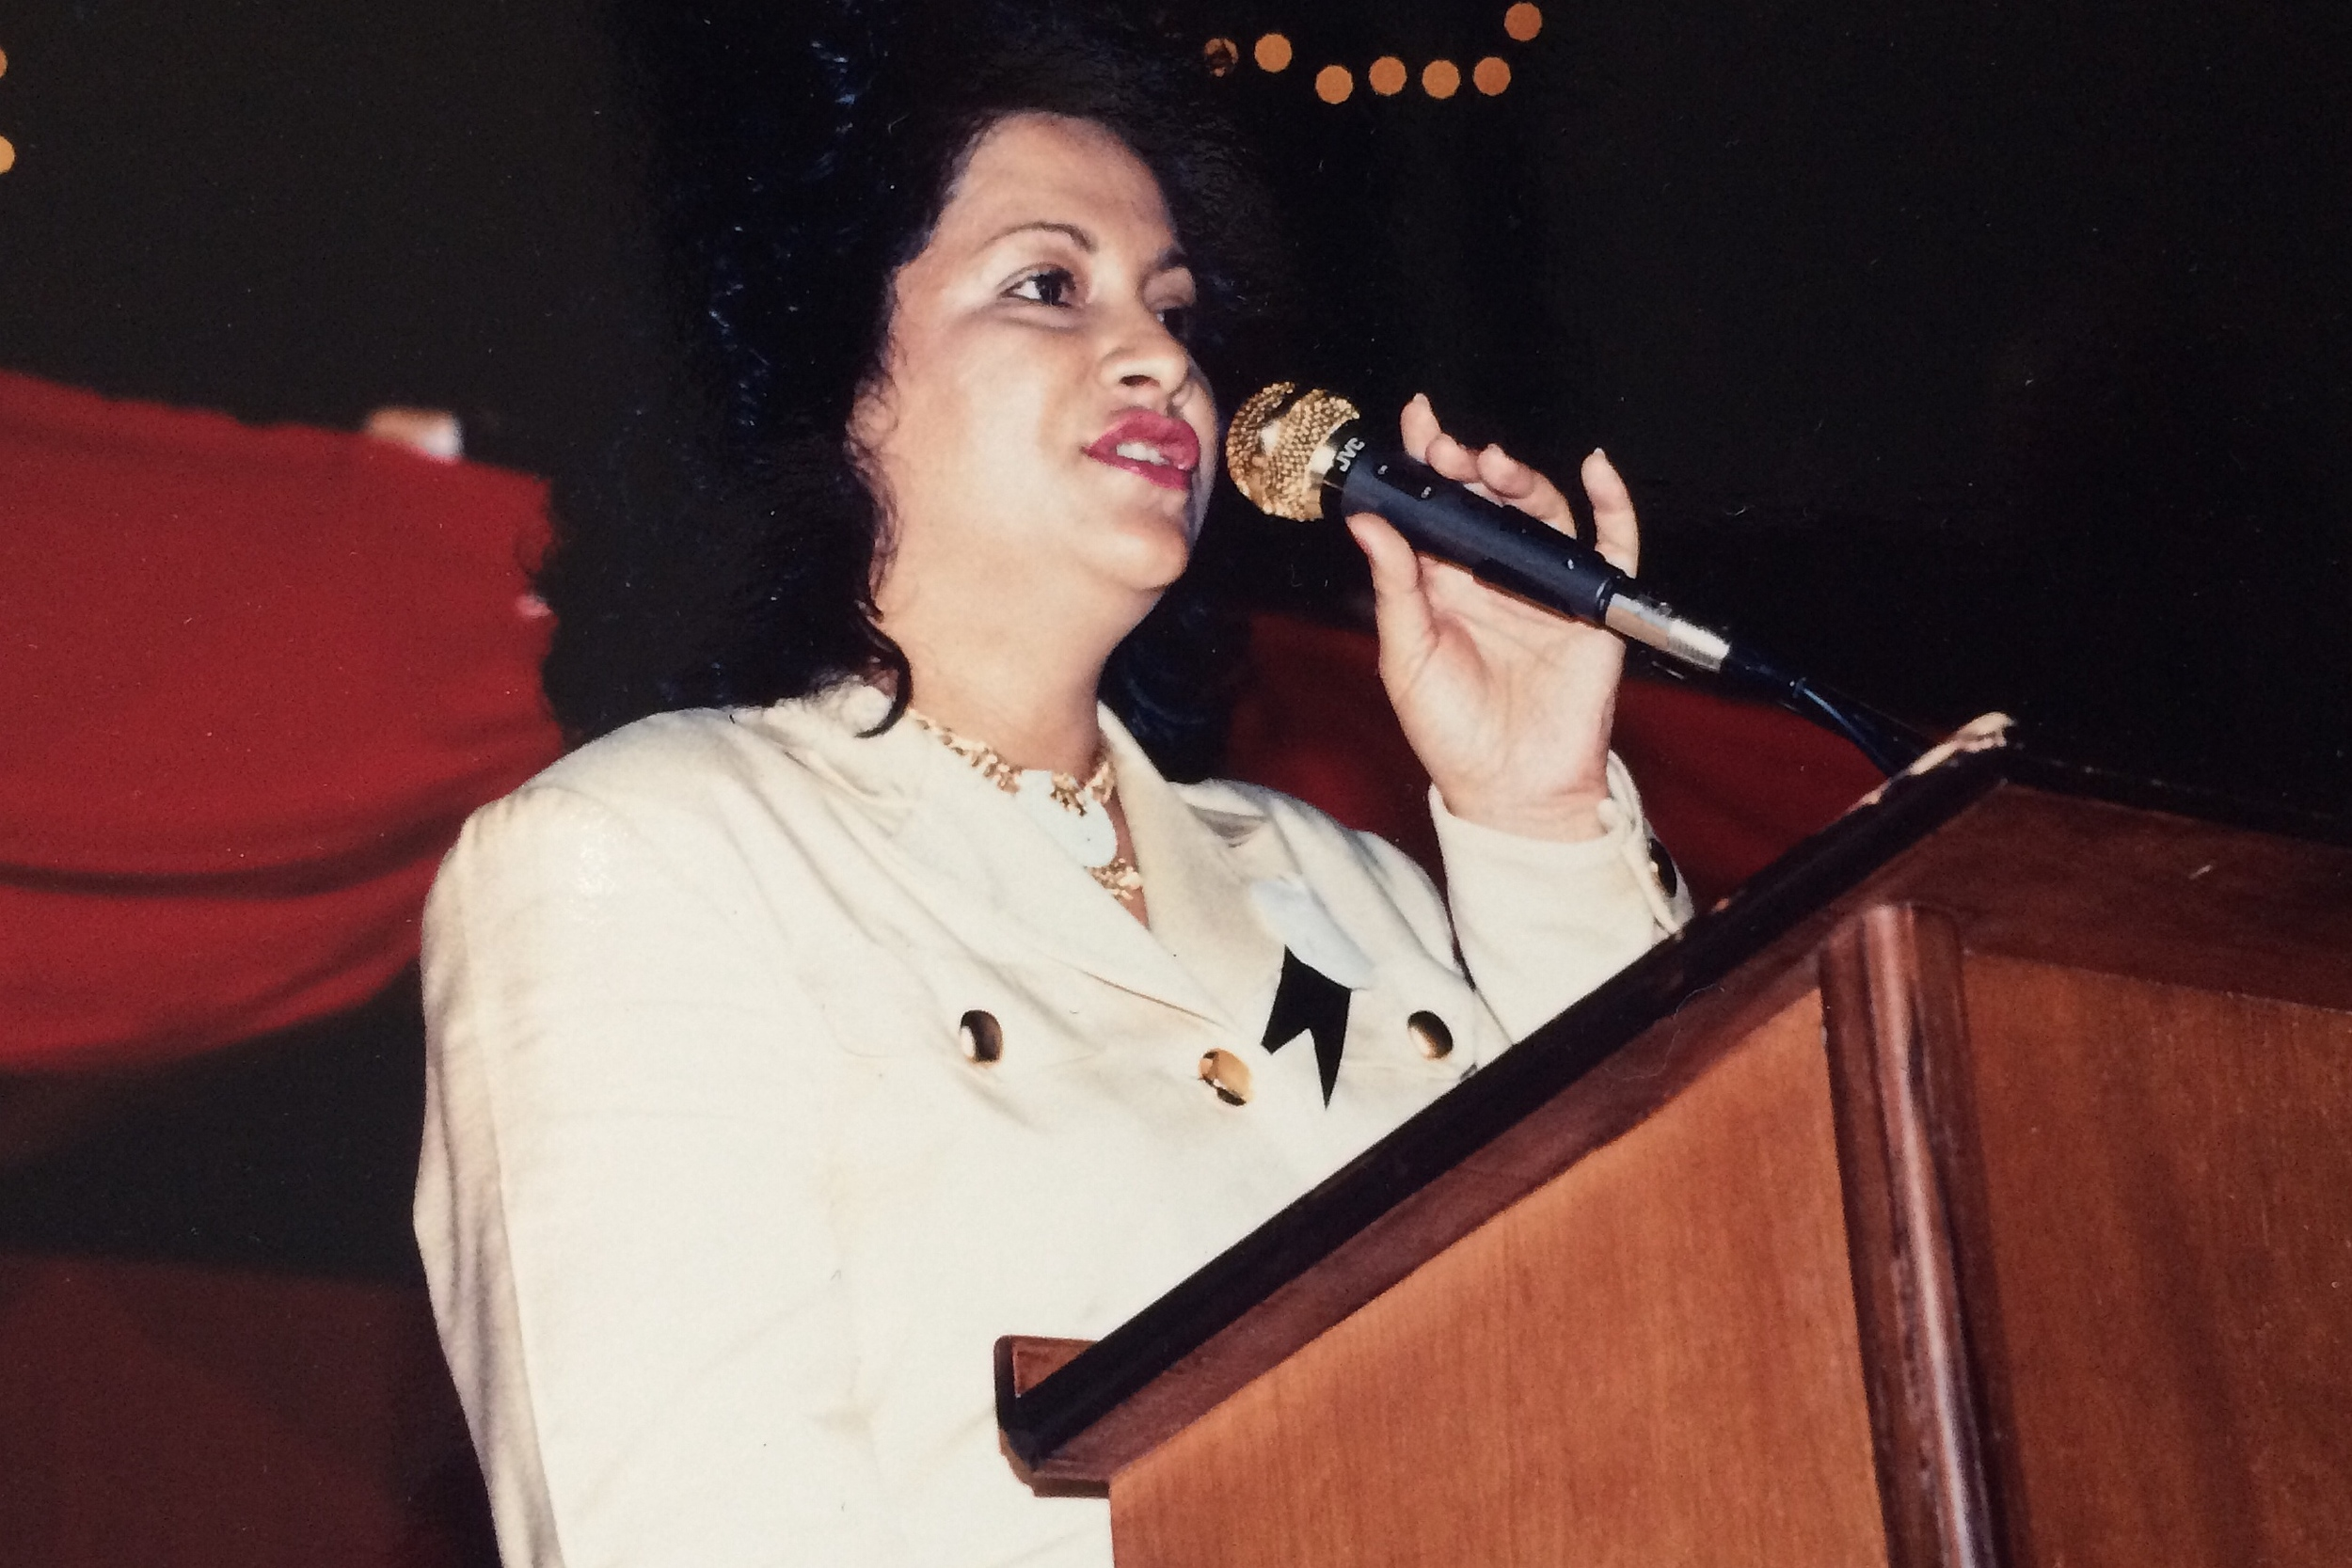 Mom giving one of her many speeches